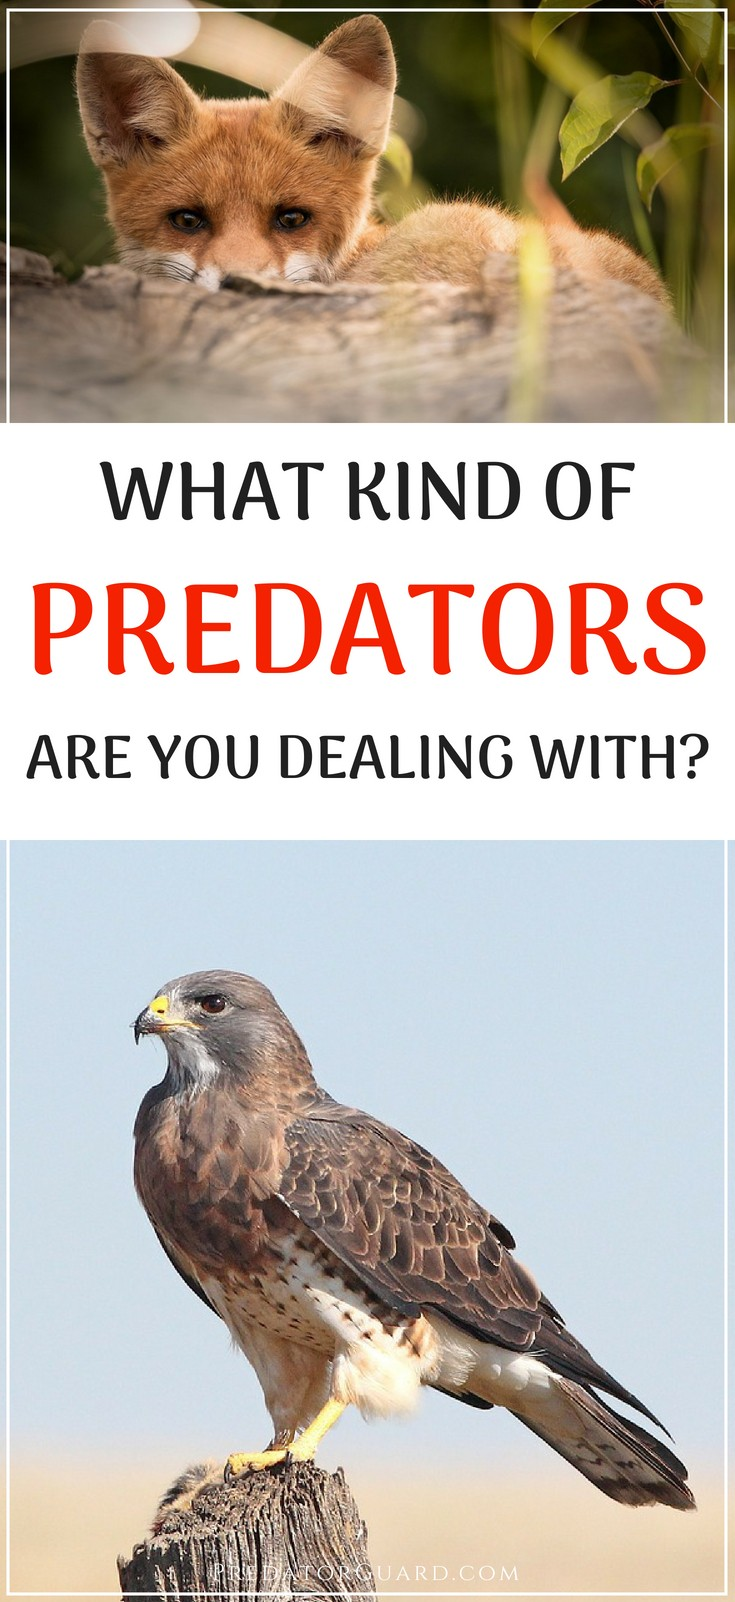 What-Kind-of-Predators-Are-You-Dealing-With-On-Your-Farm